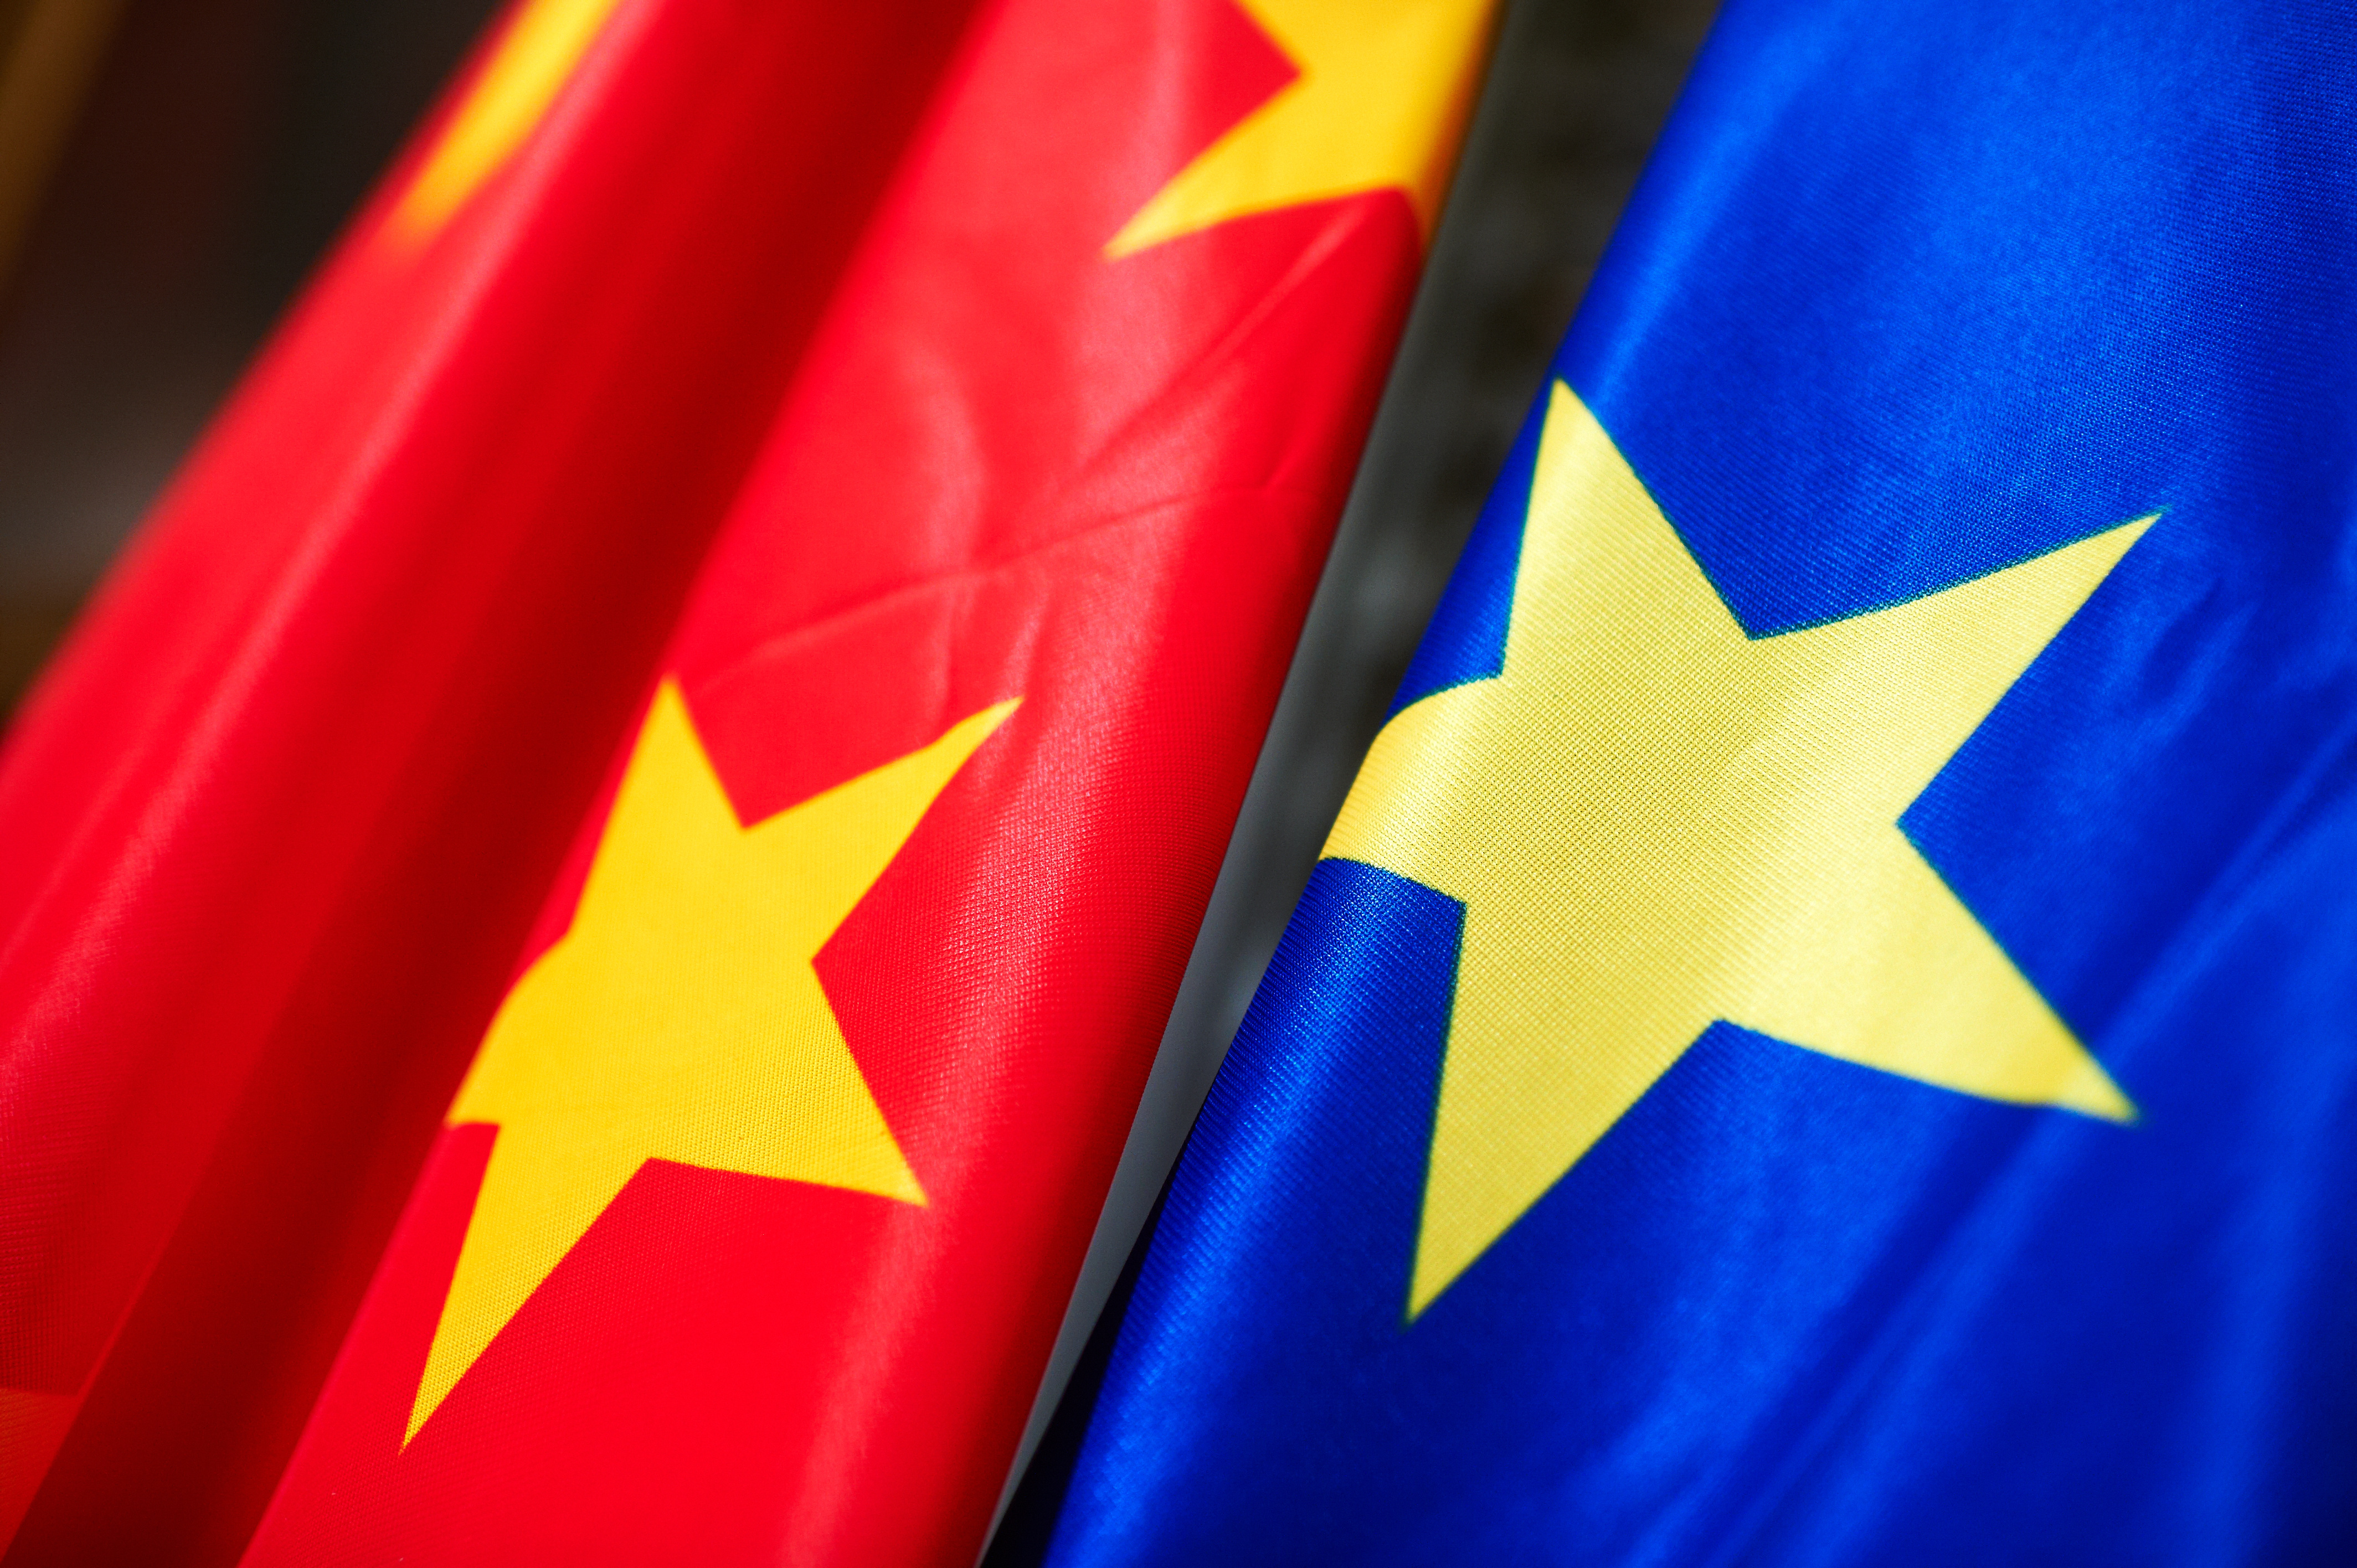 eu china relationship He ambassador yang yanyi, head of the mission of the people's republic of china to the european union looks into the year 2015 as china and the eu celebrate the.